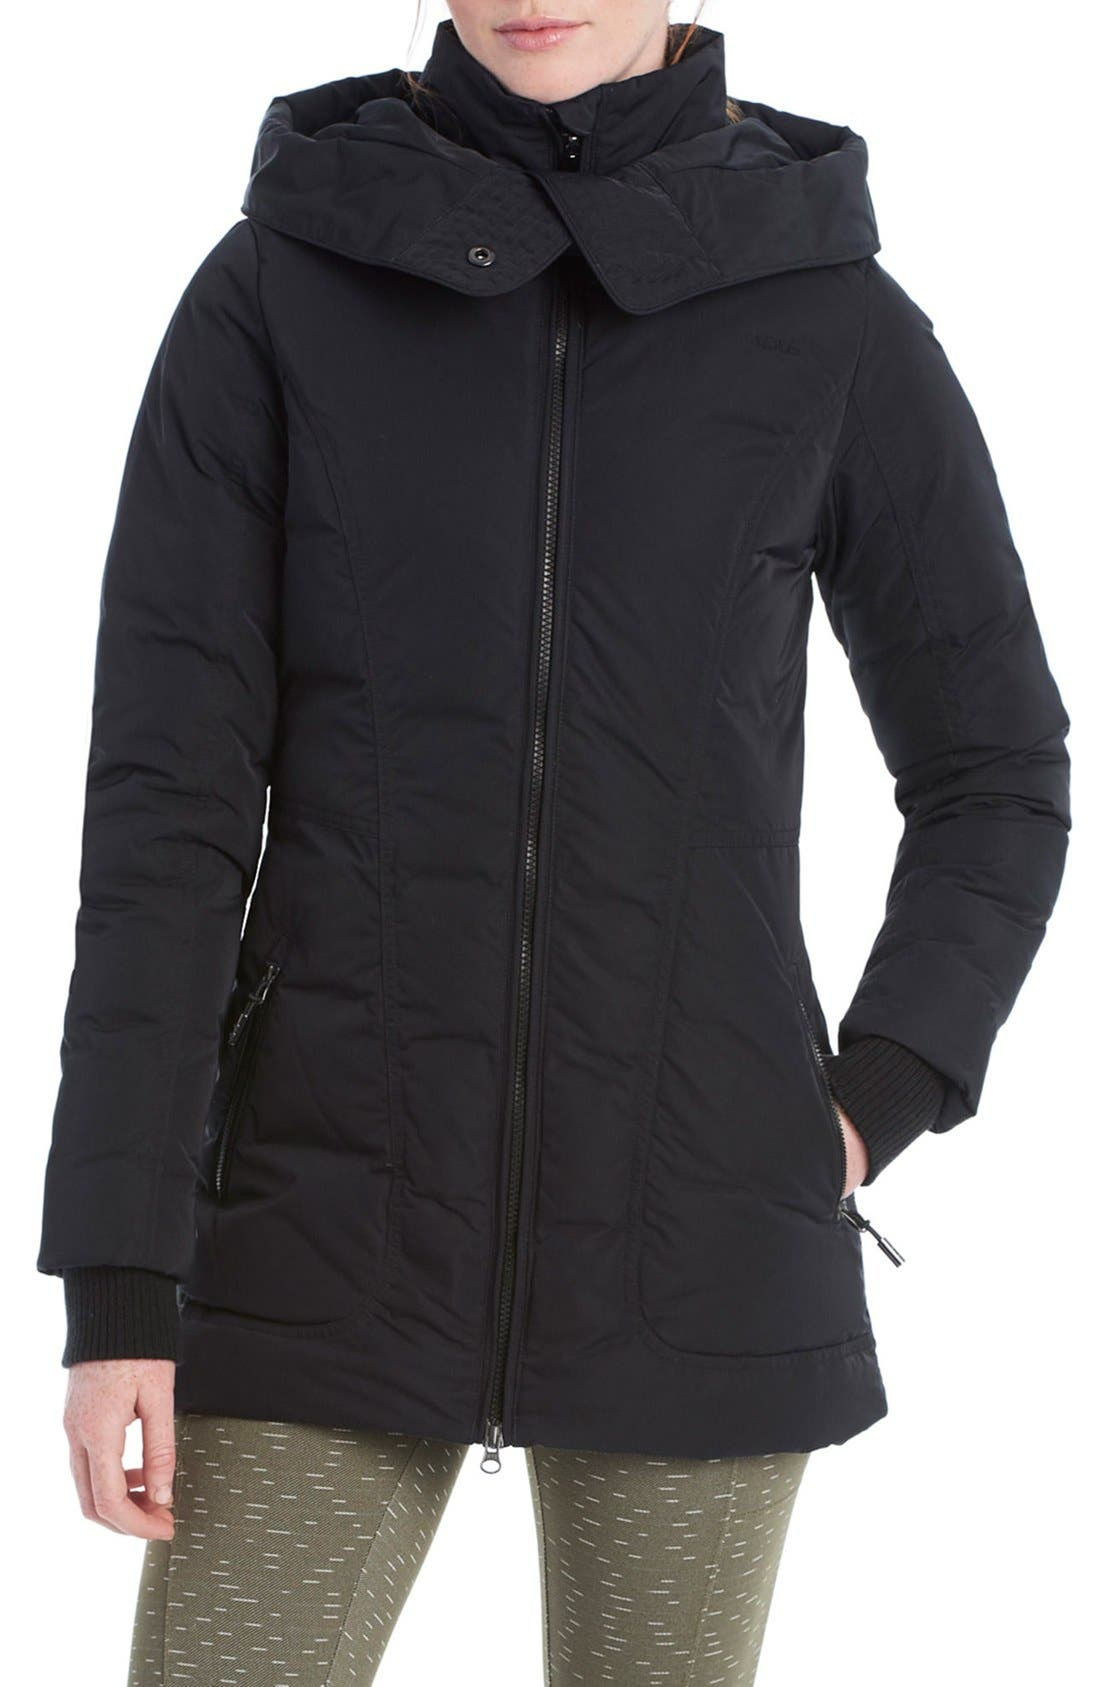 LOLE 'Nicky' Hooded Insulated Jacket, Main, color, 001